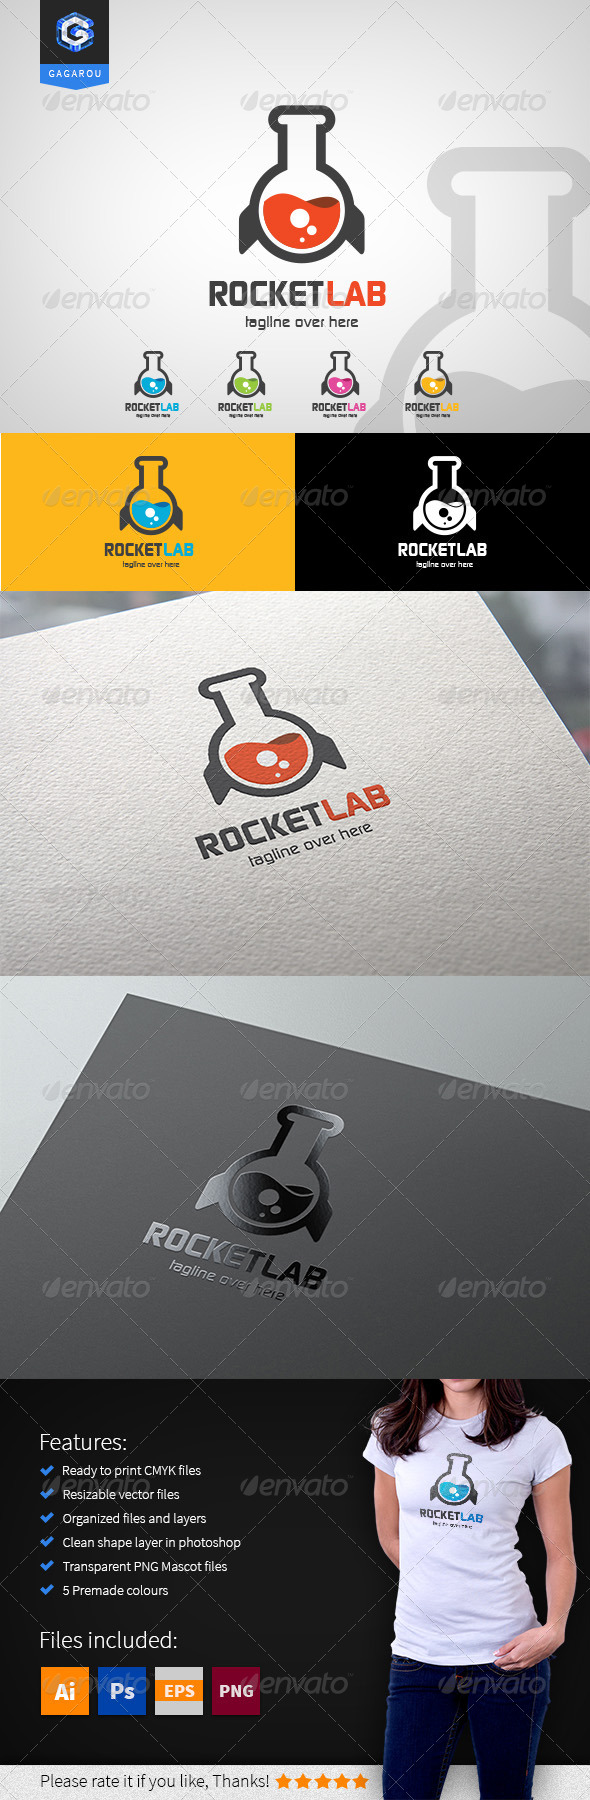 GraphicRiver Rocket Lab logo 8505685